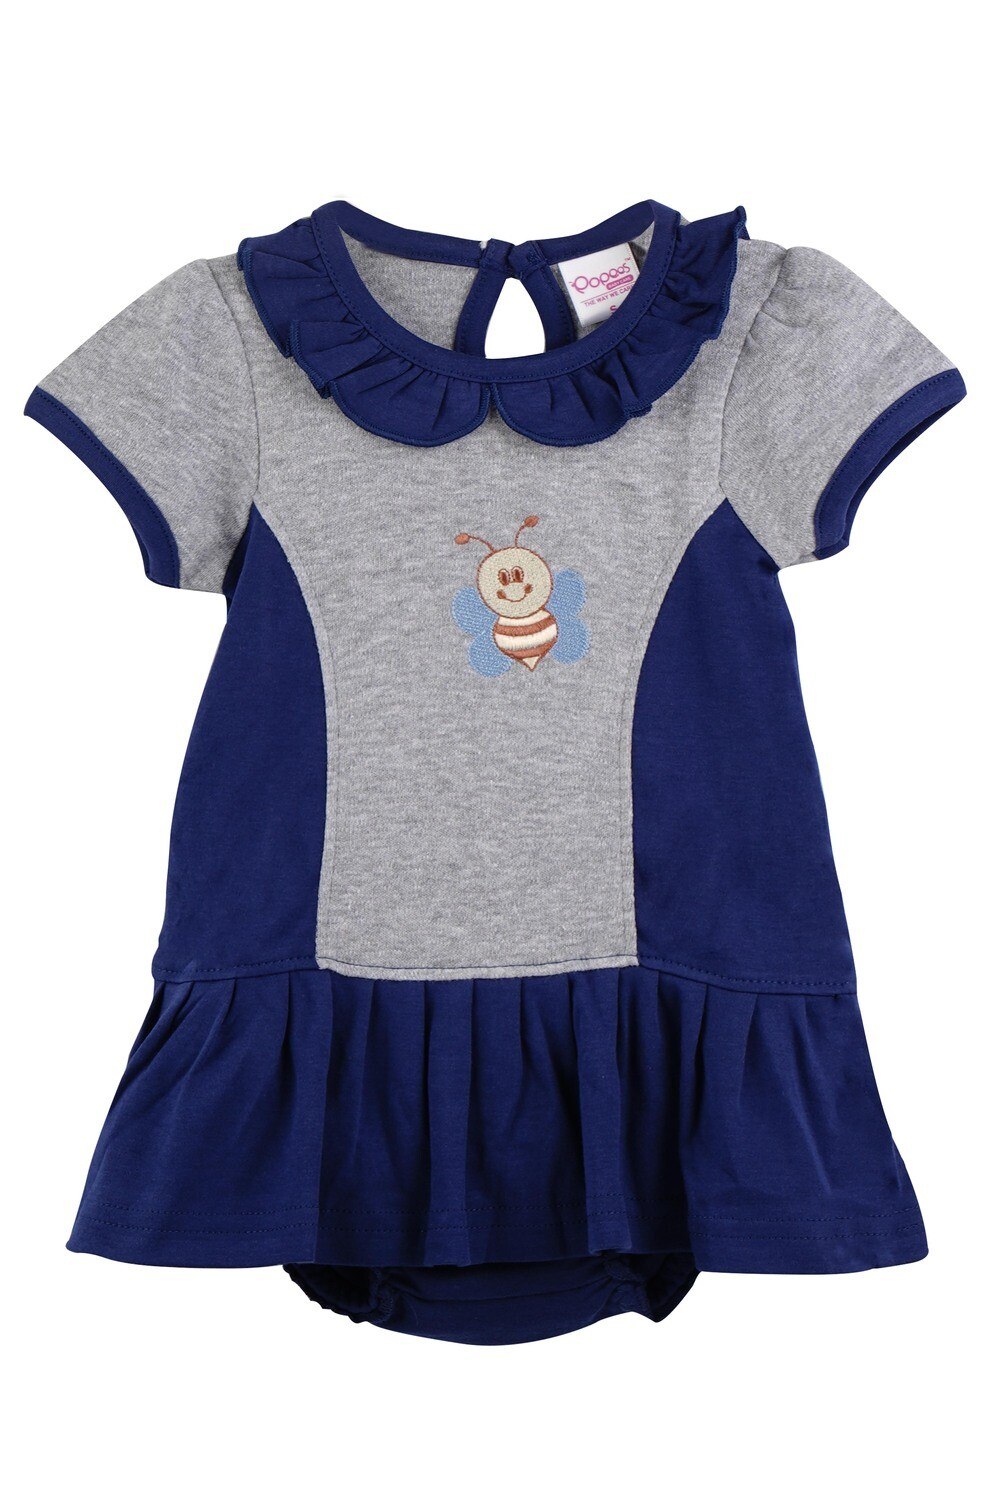 Omega Navy Blue Half Sleeve Frock with Bloomer for Baby Girls